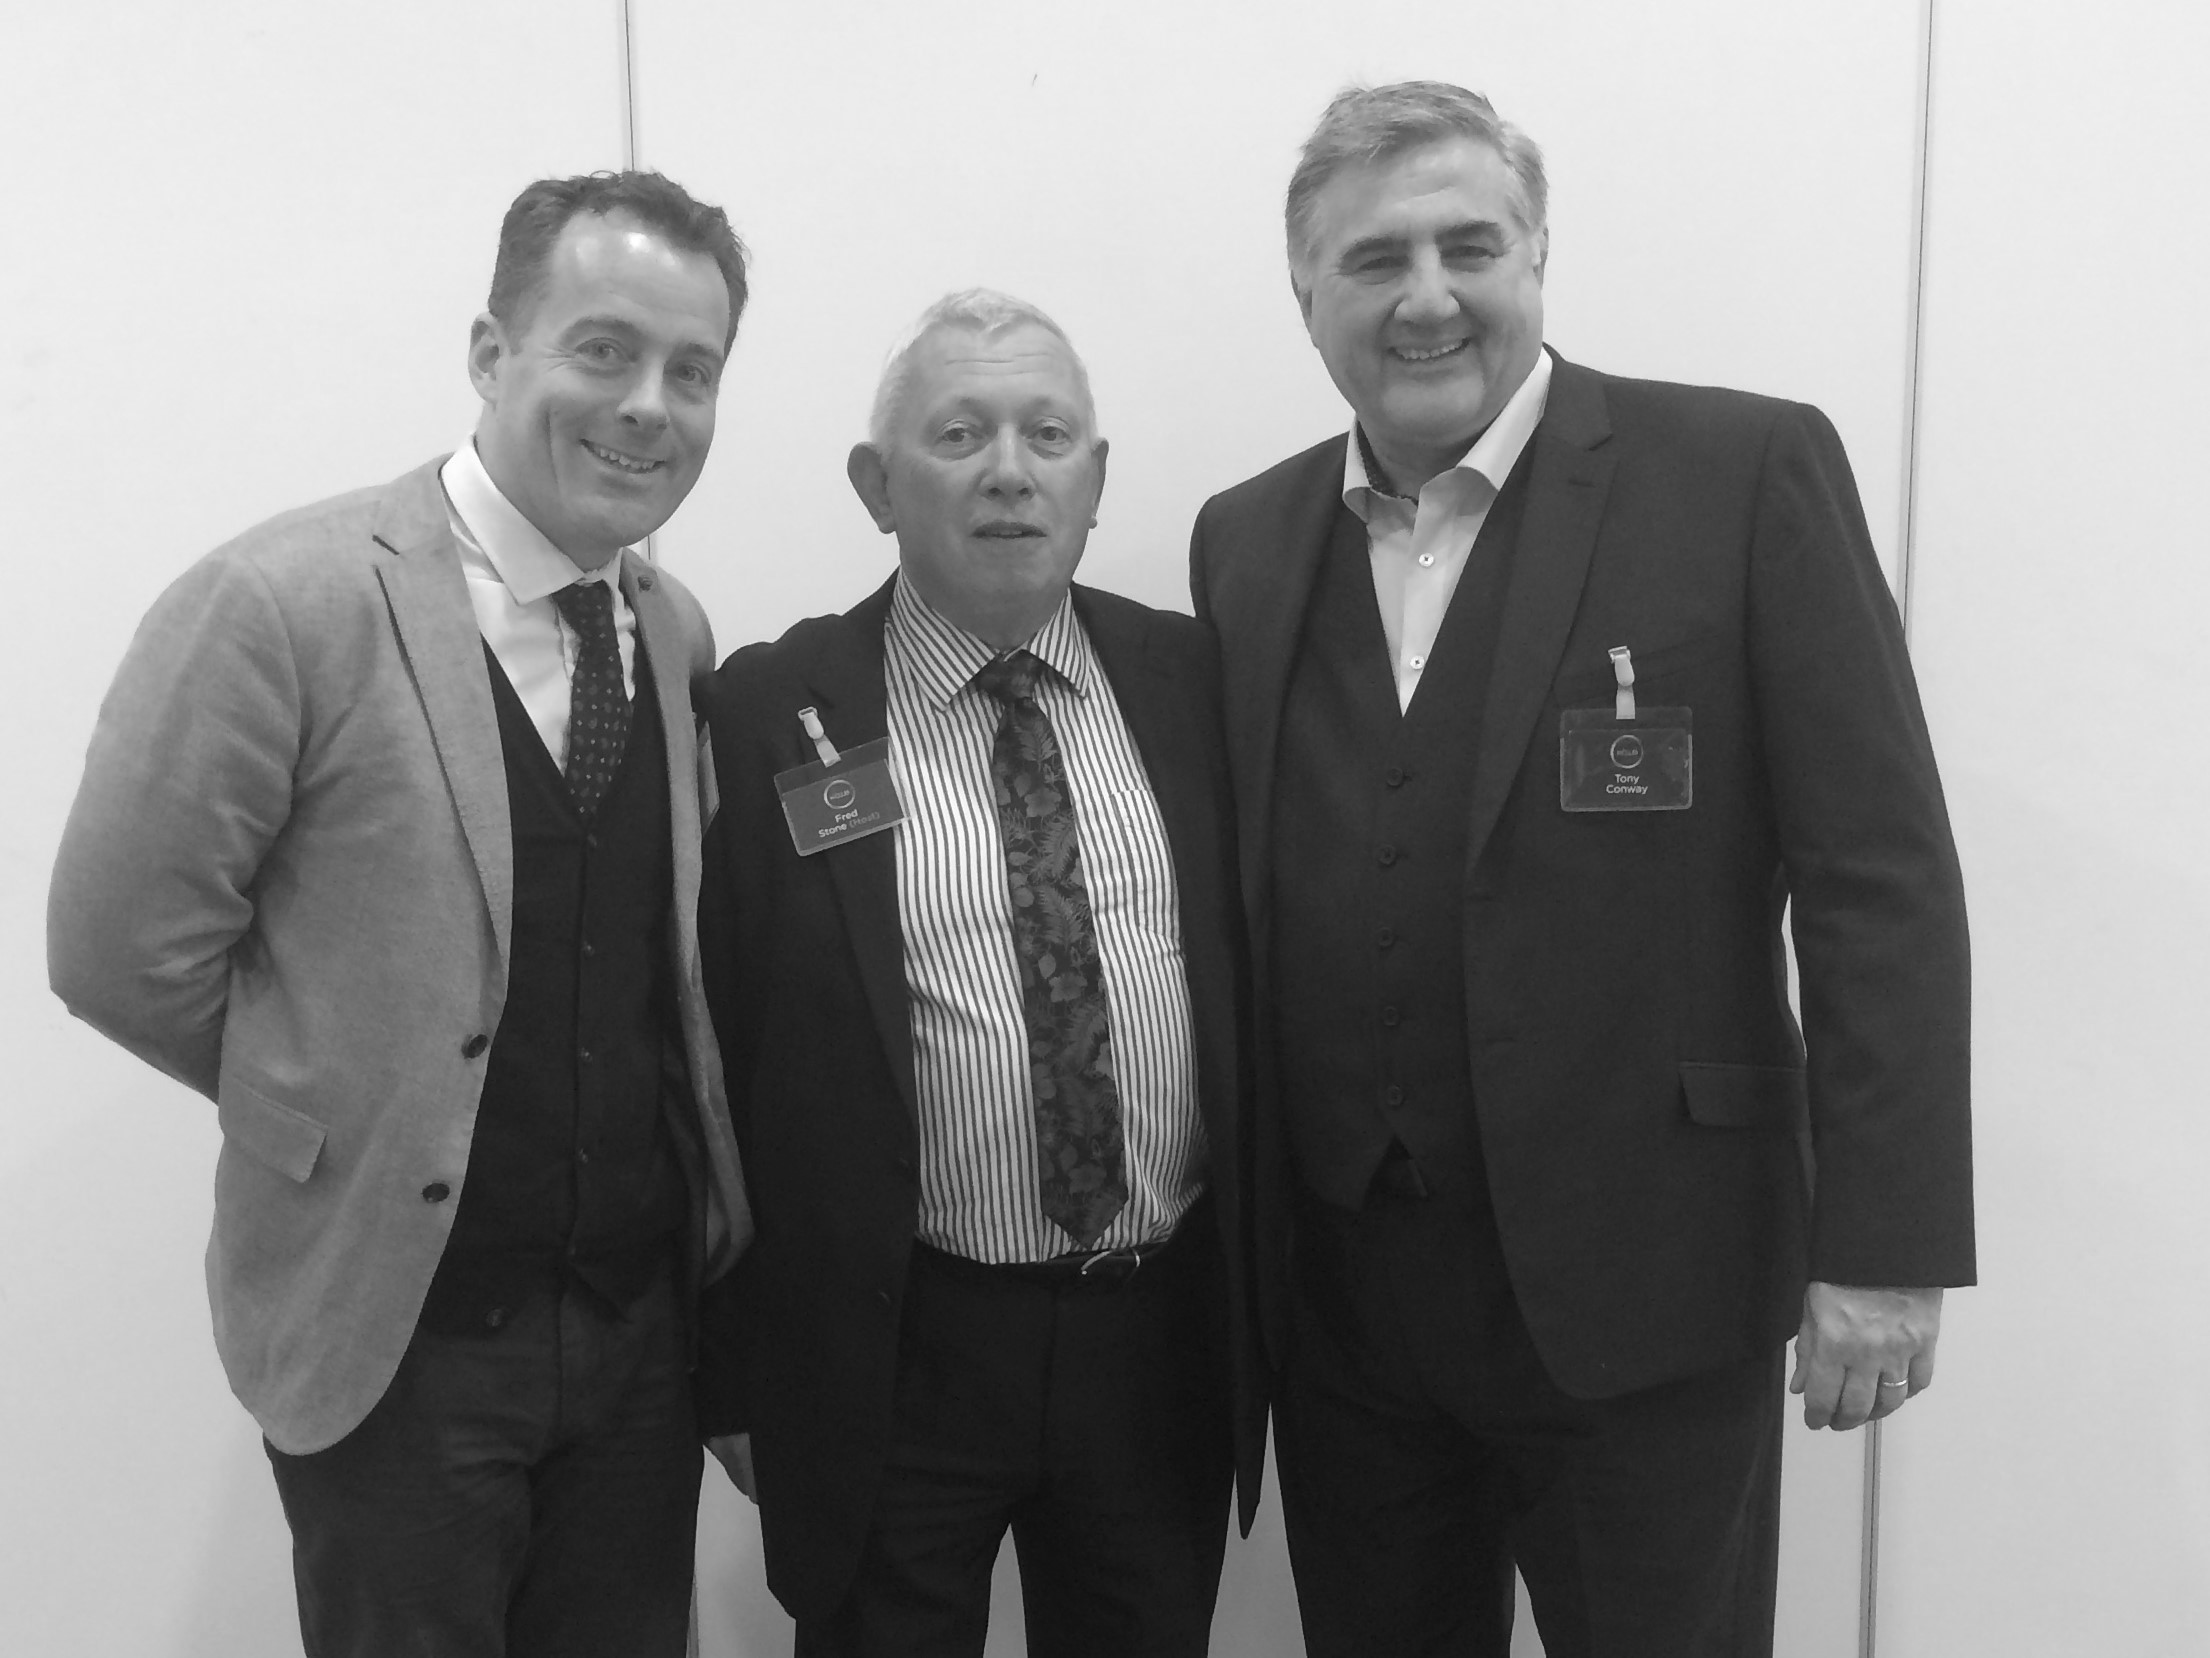 K-Club Breakfast 21.9.17 (l-r) Nick Bianchi, Fred Stone, Tony Conway.